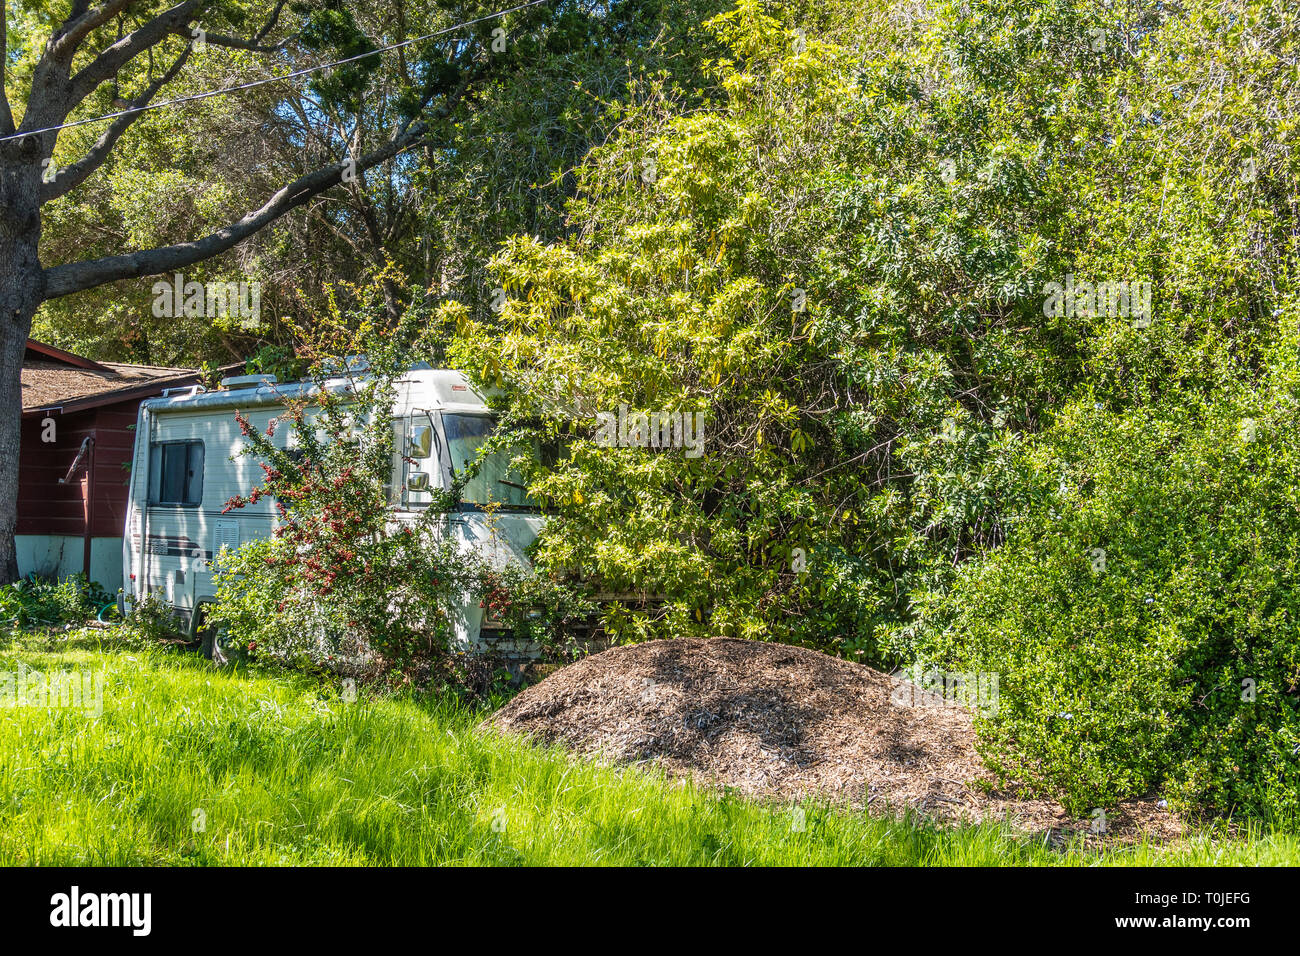 A recreational vehicle (RV) is overgrown by bushes due to its neglect and disuse over a period of years. - Stock Image